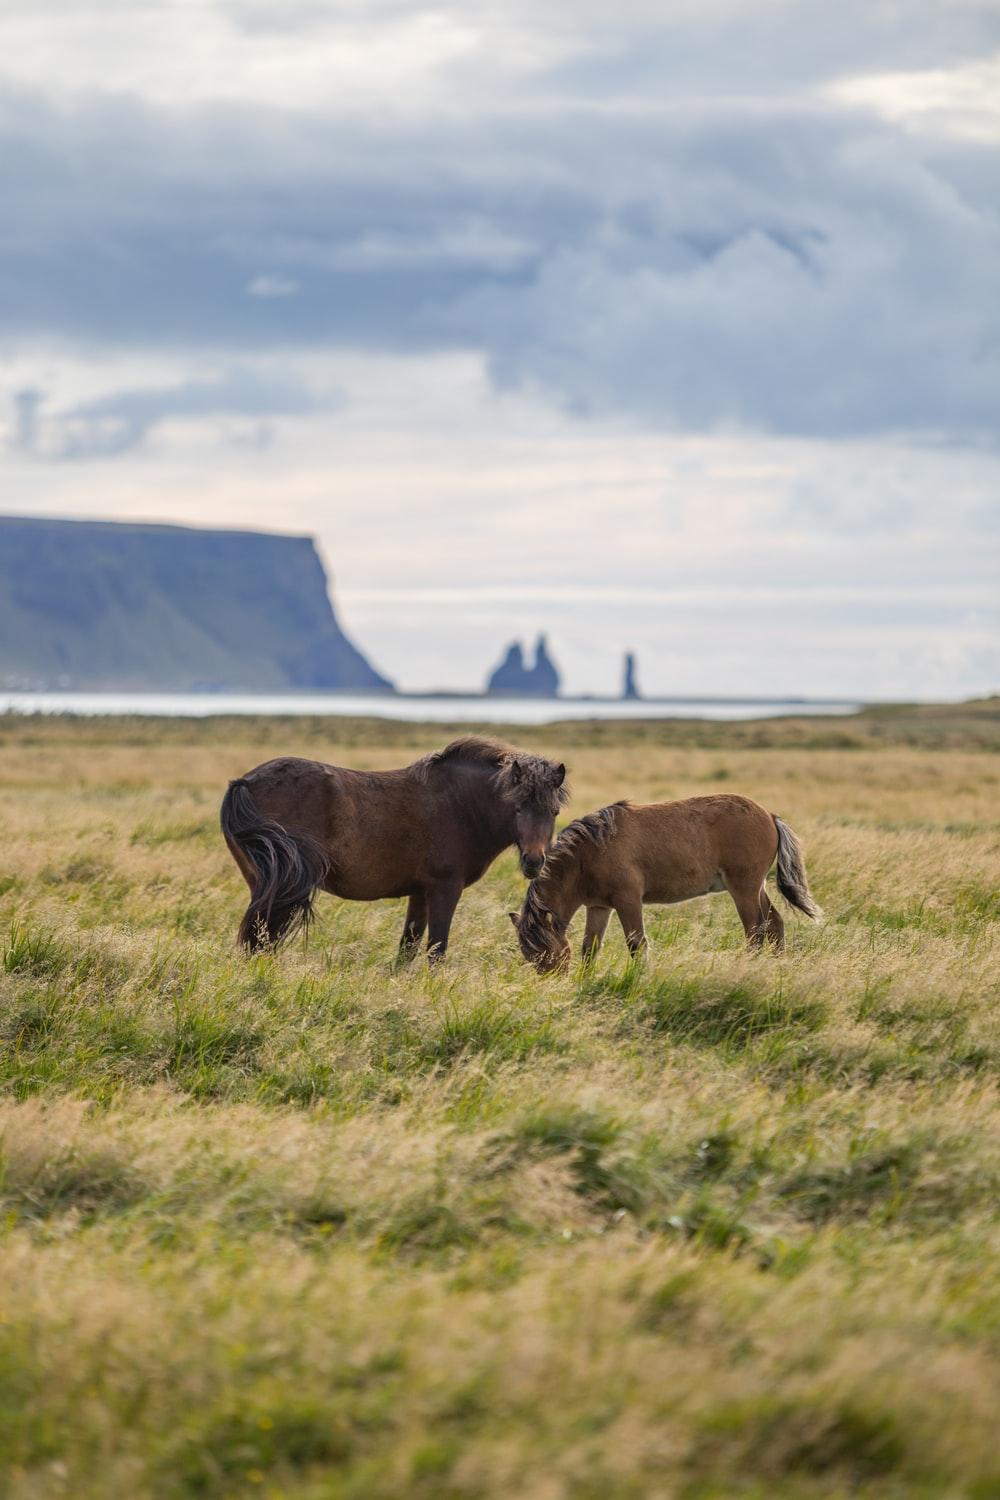 two brown horses in grass field